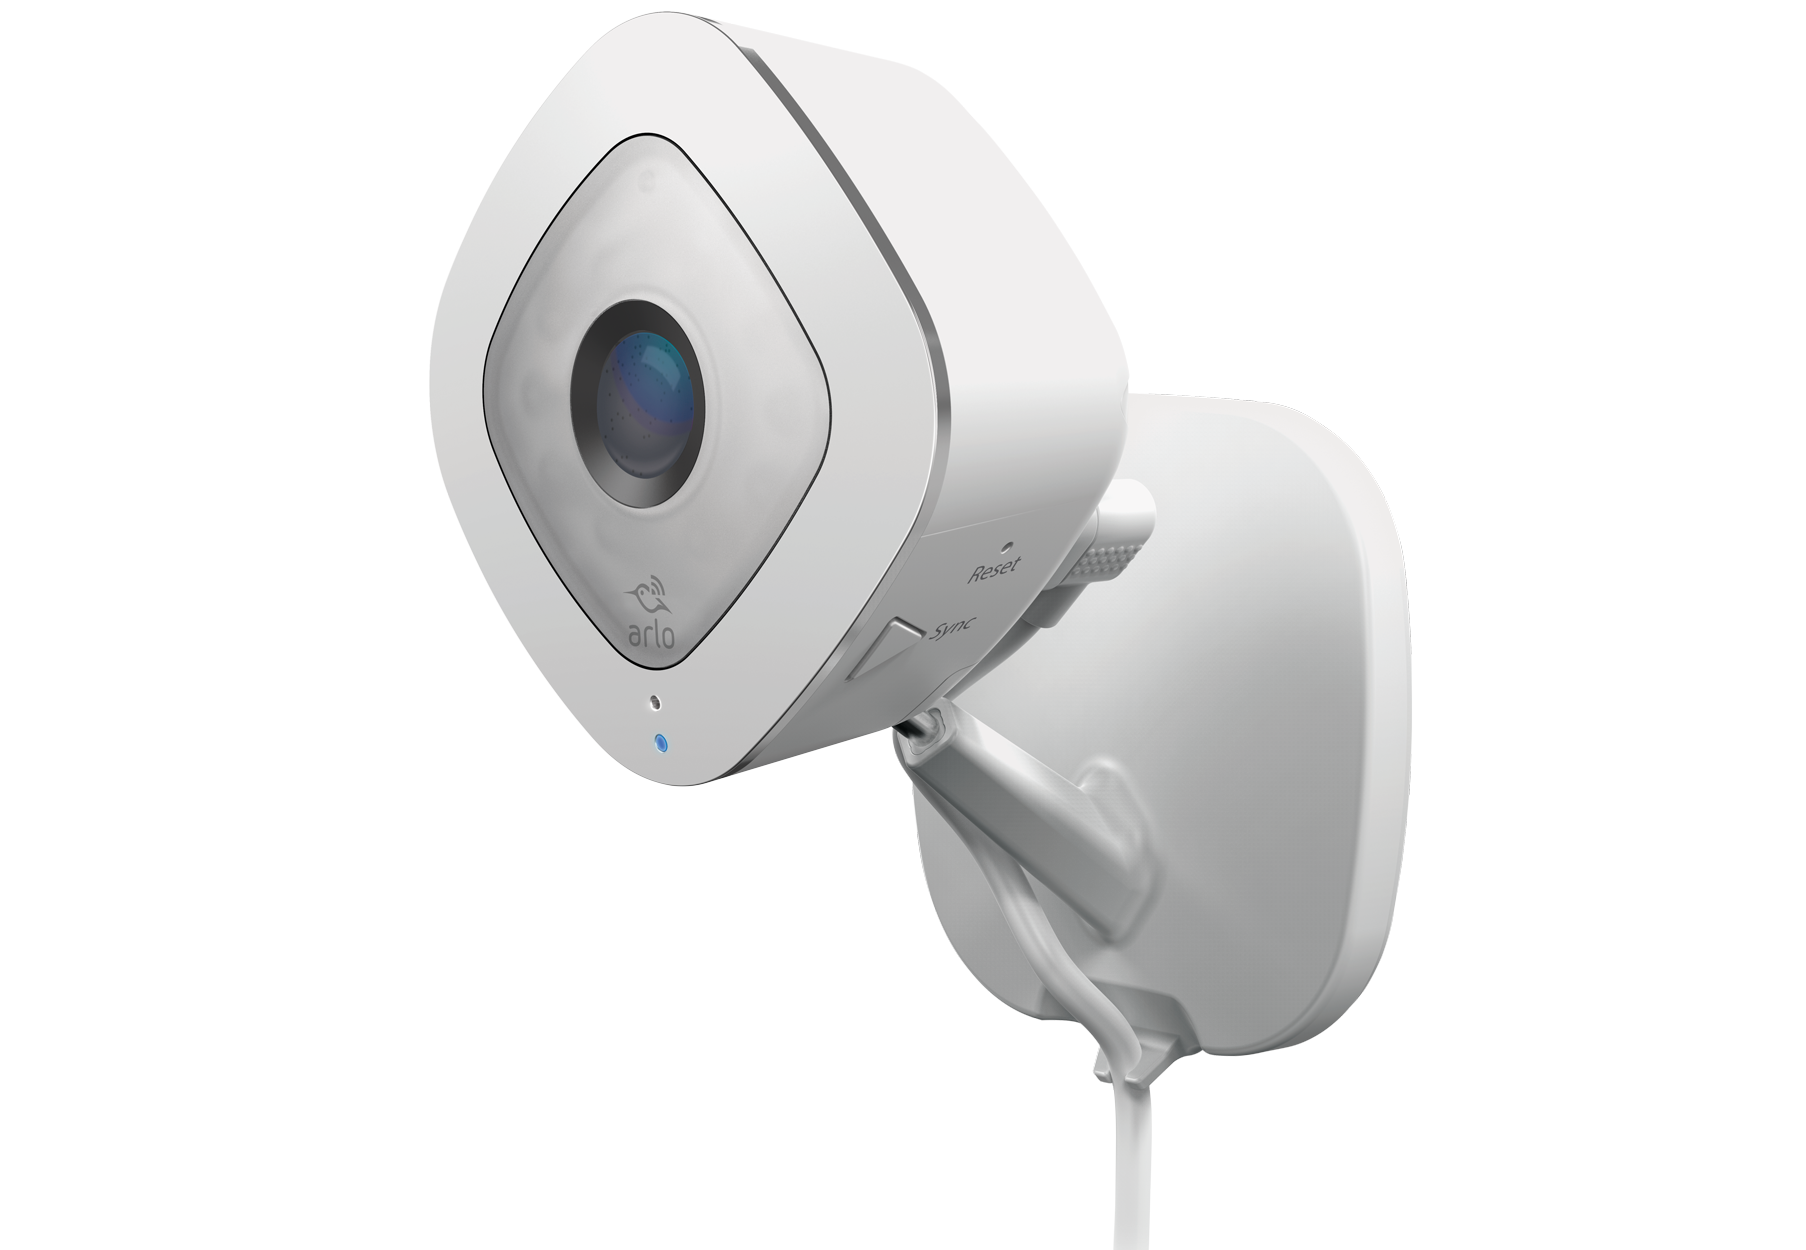 The Arlo Q Plus Security Camera